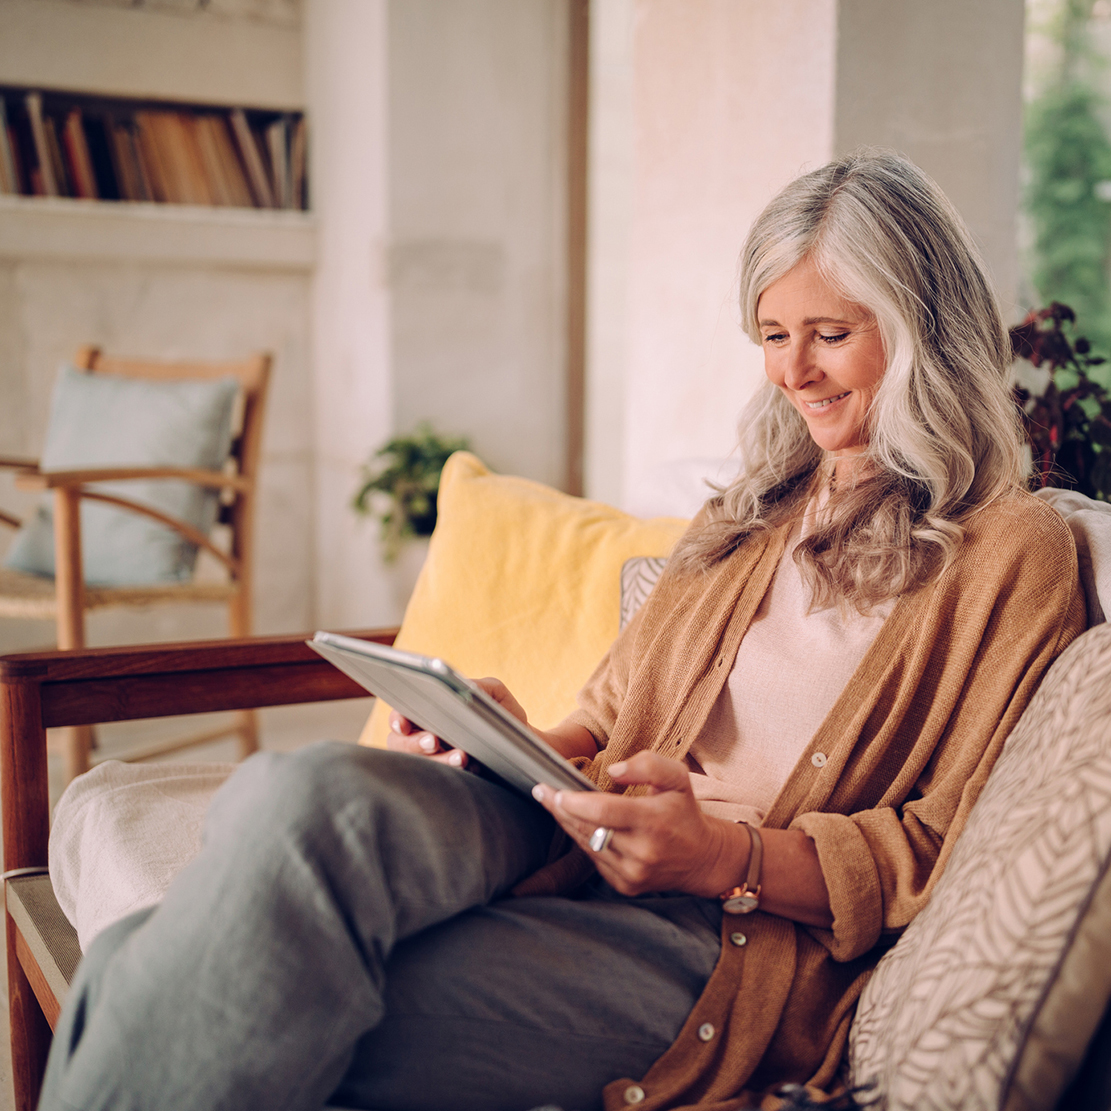 senior woman sitting on her couch looking at her tablet